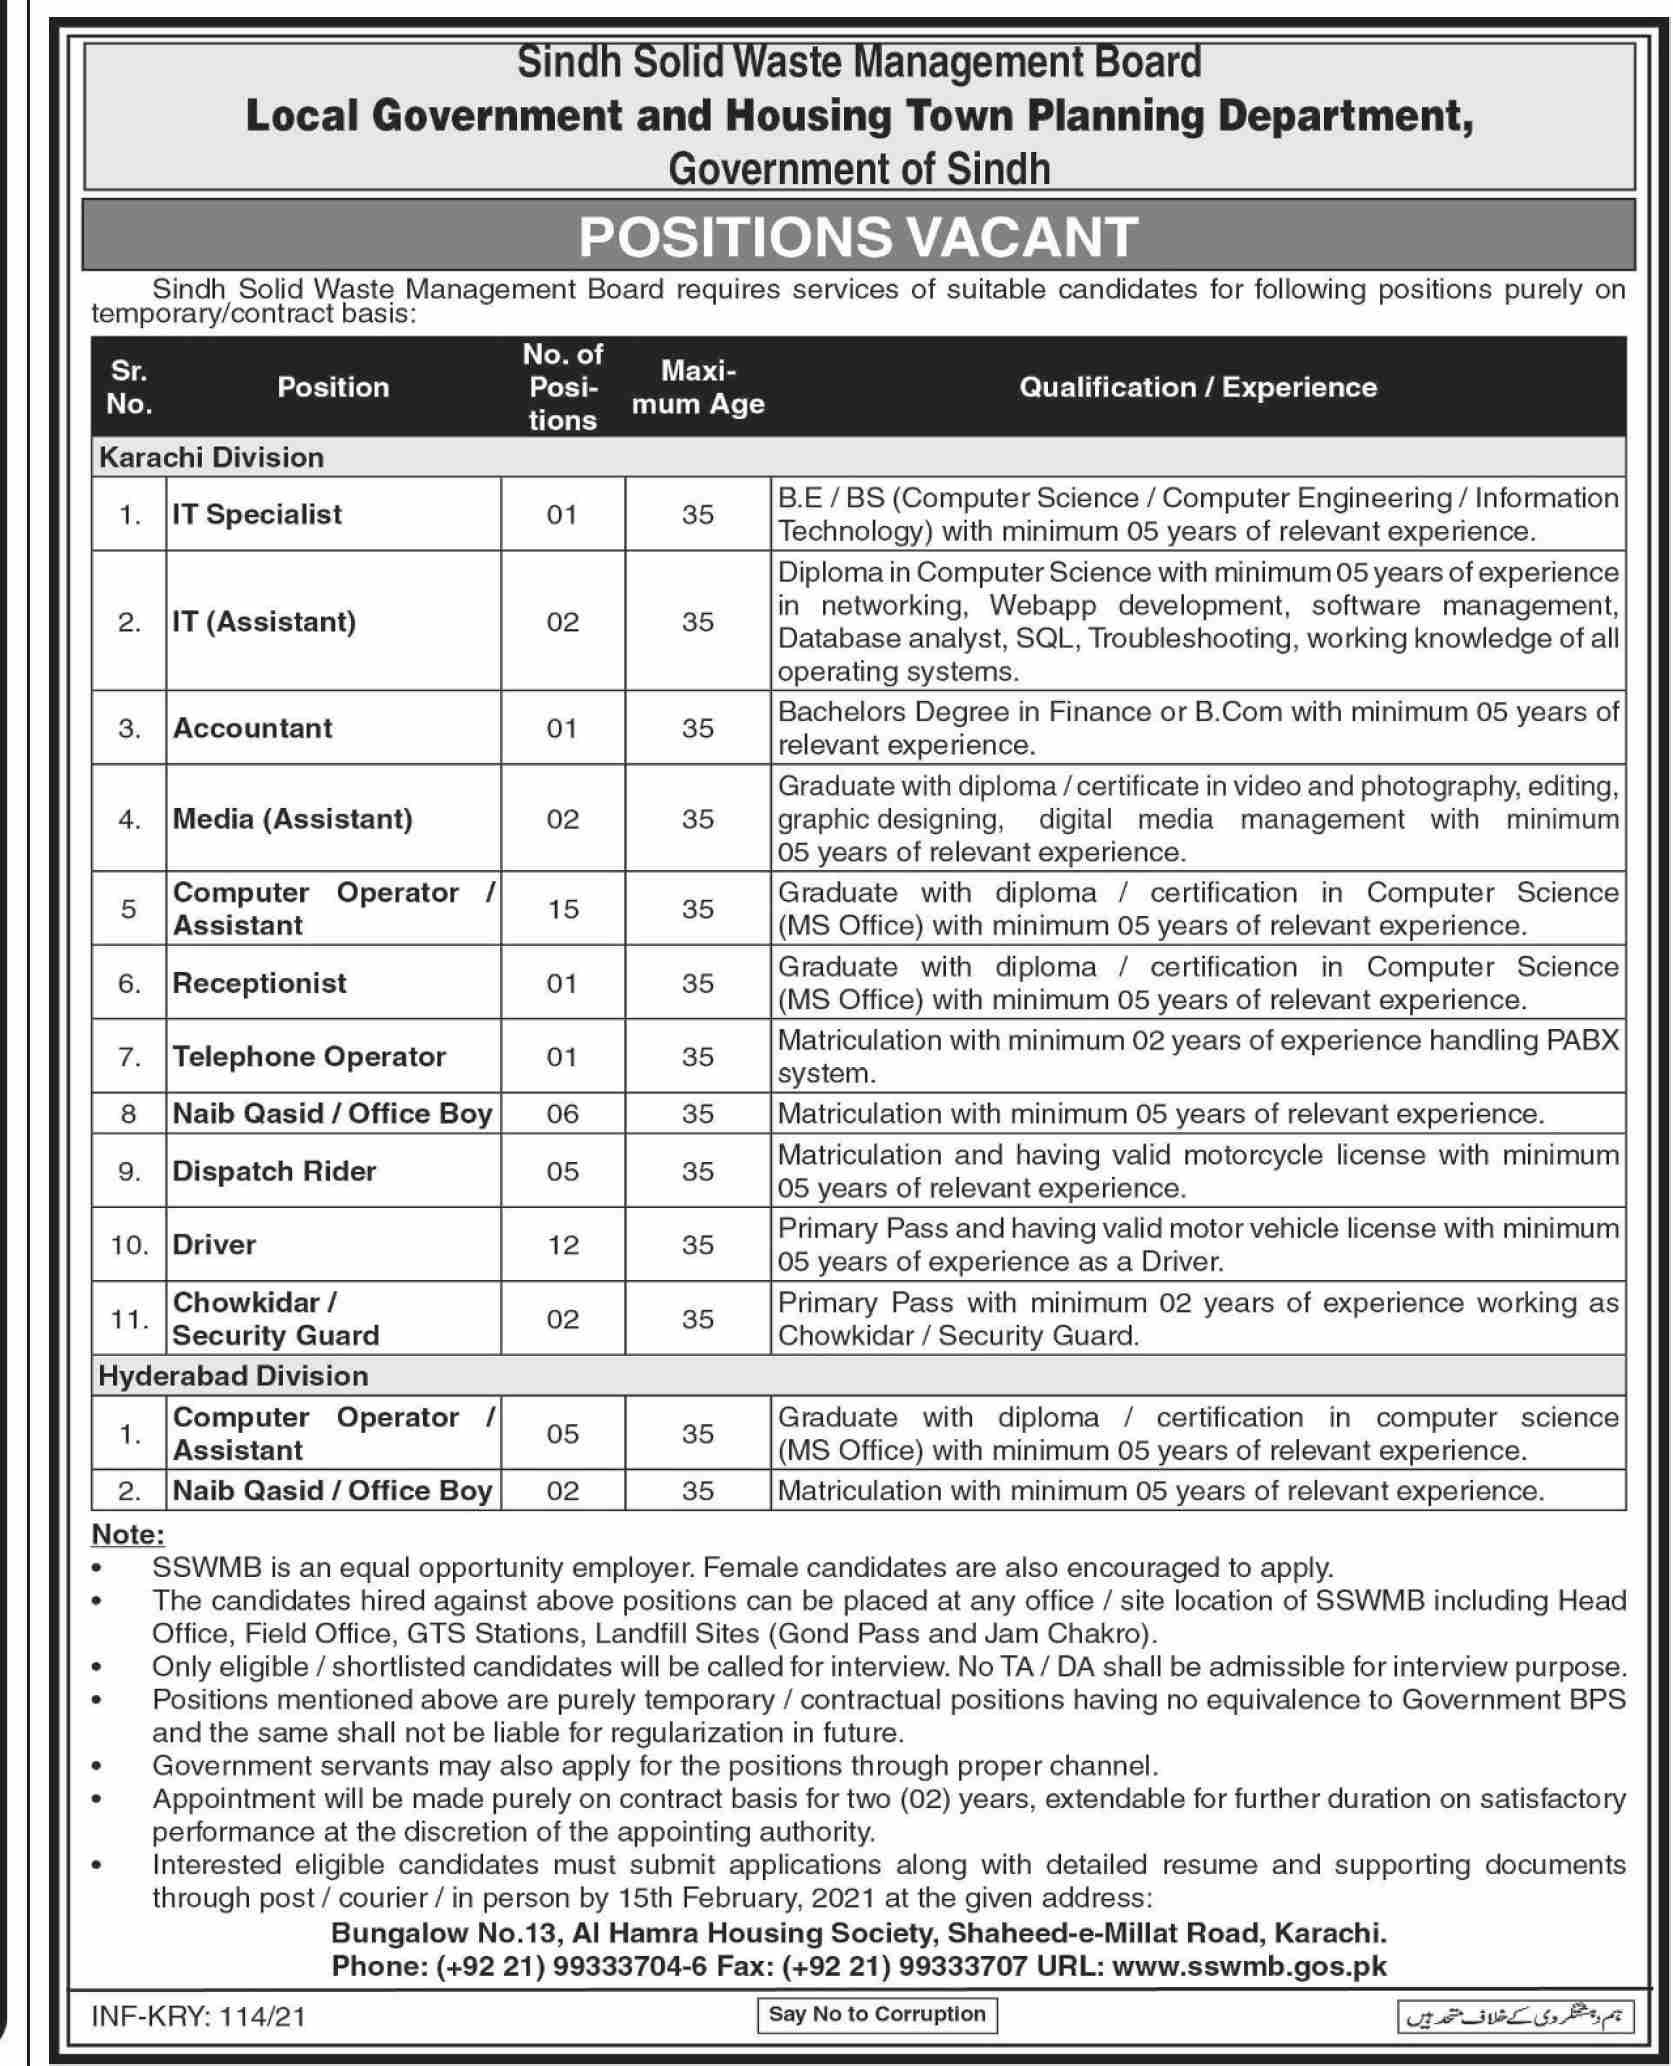 Local Government and Housing Town Planning Department Government of Sindh Jobs January 2021